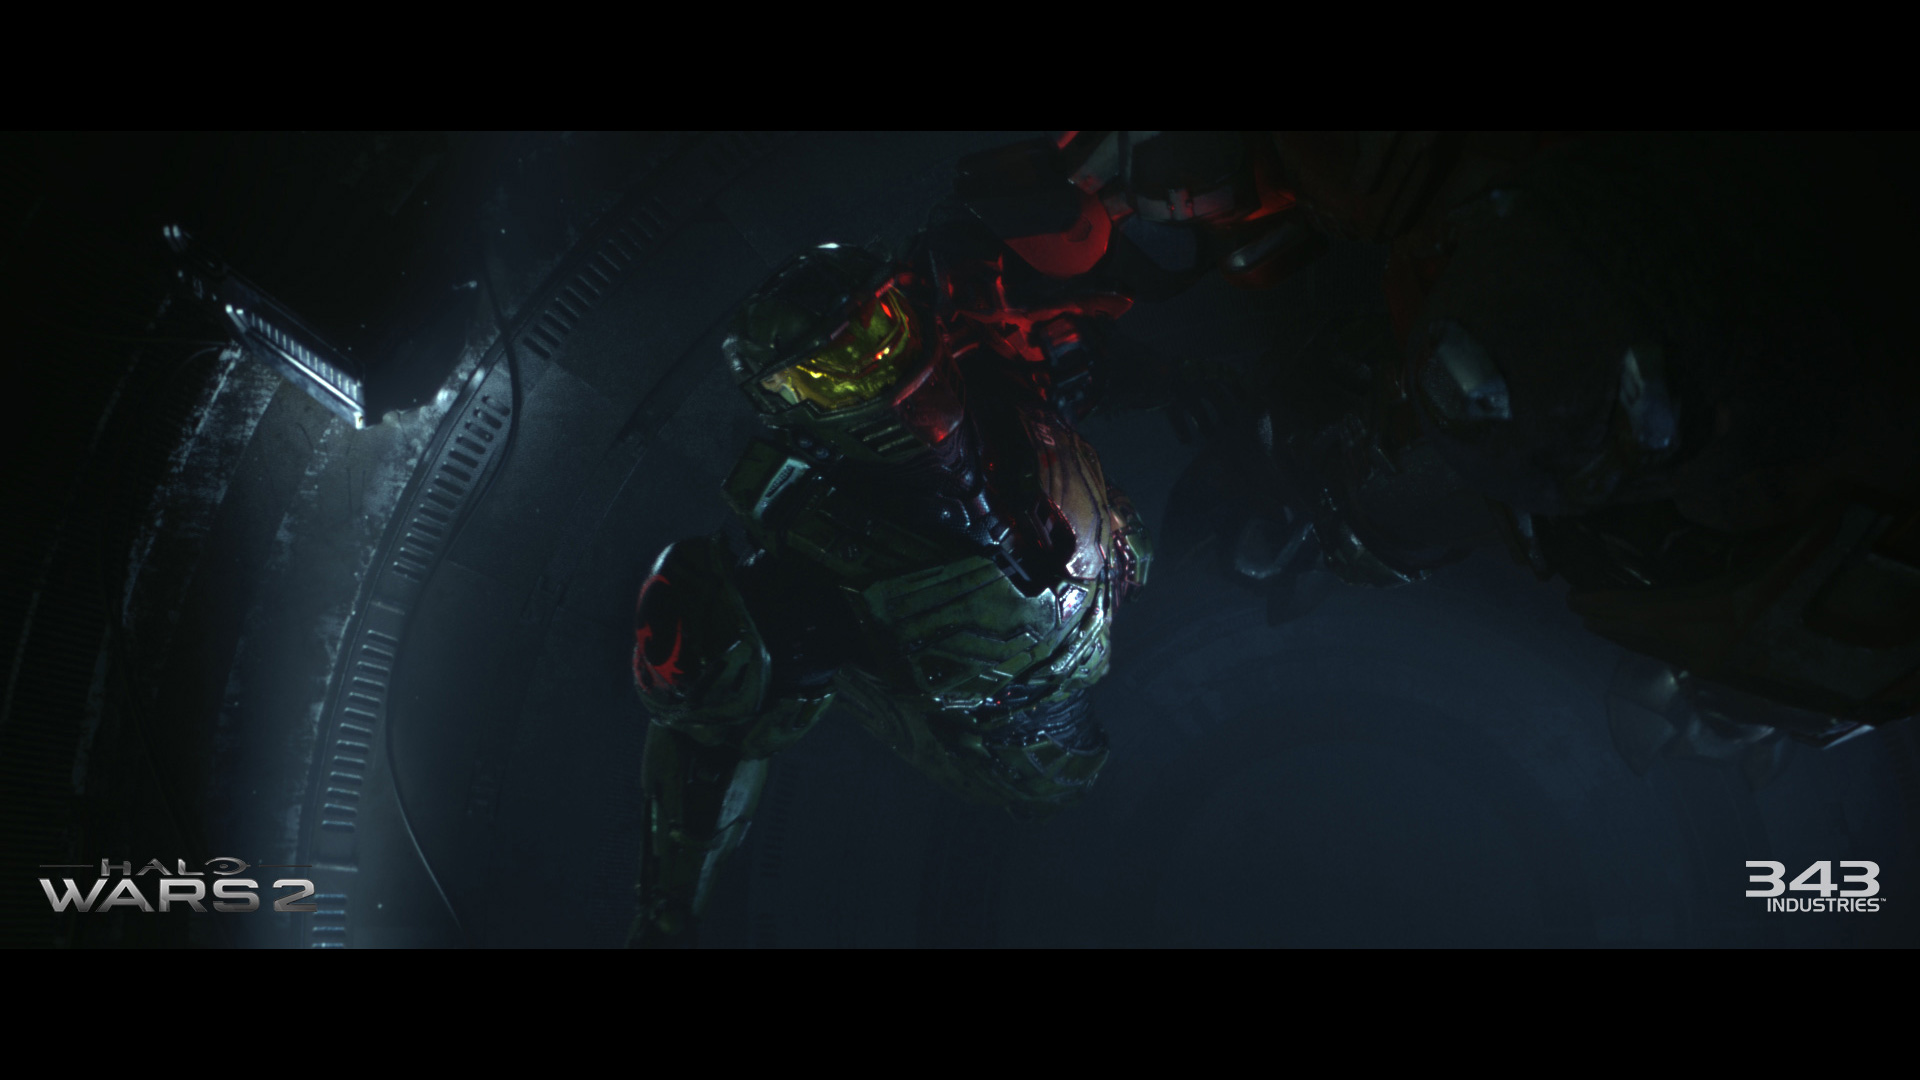 halo-wars-2-teaser-still-under-duress-a7